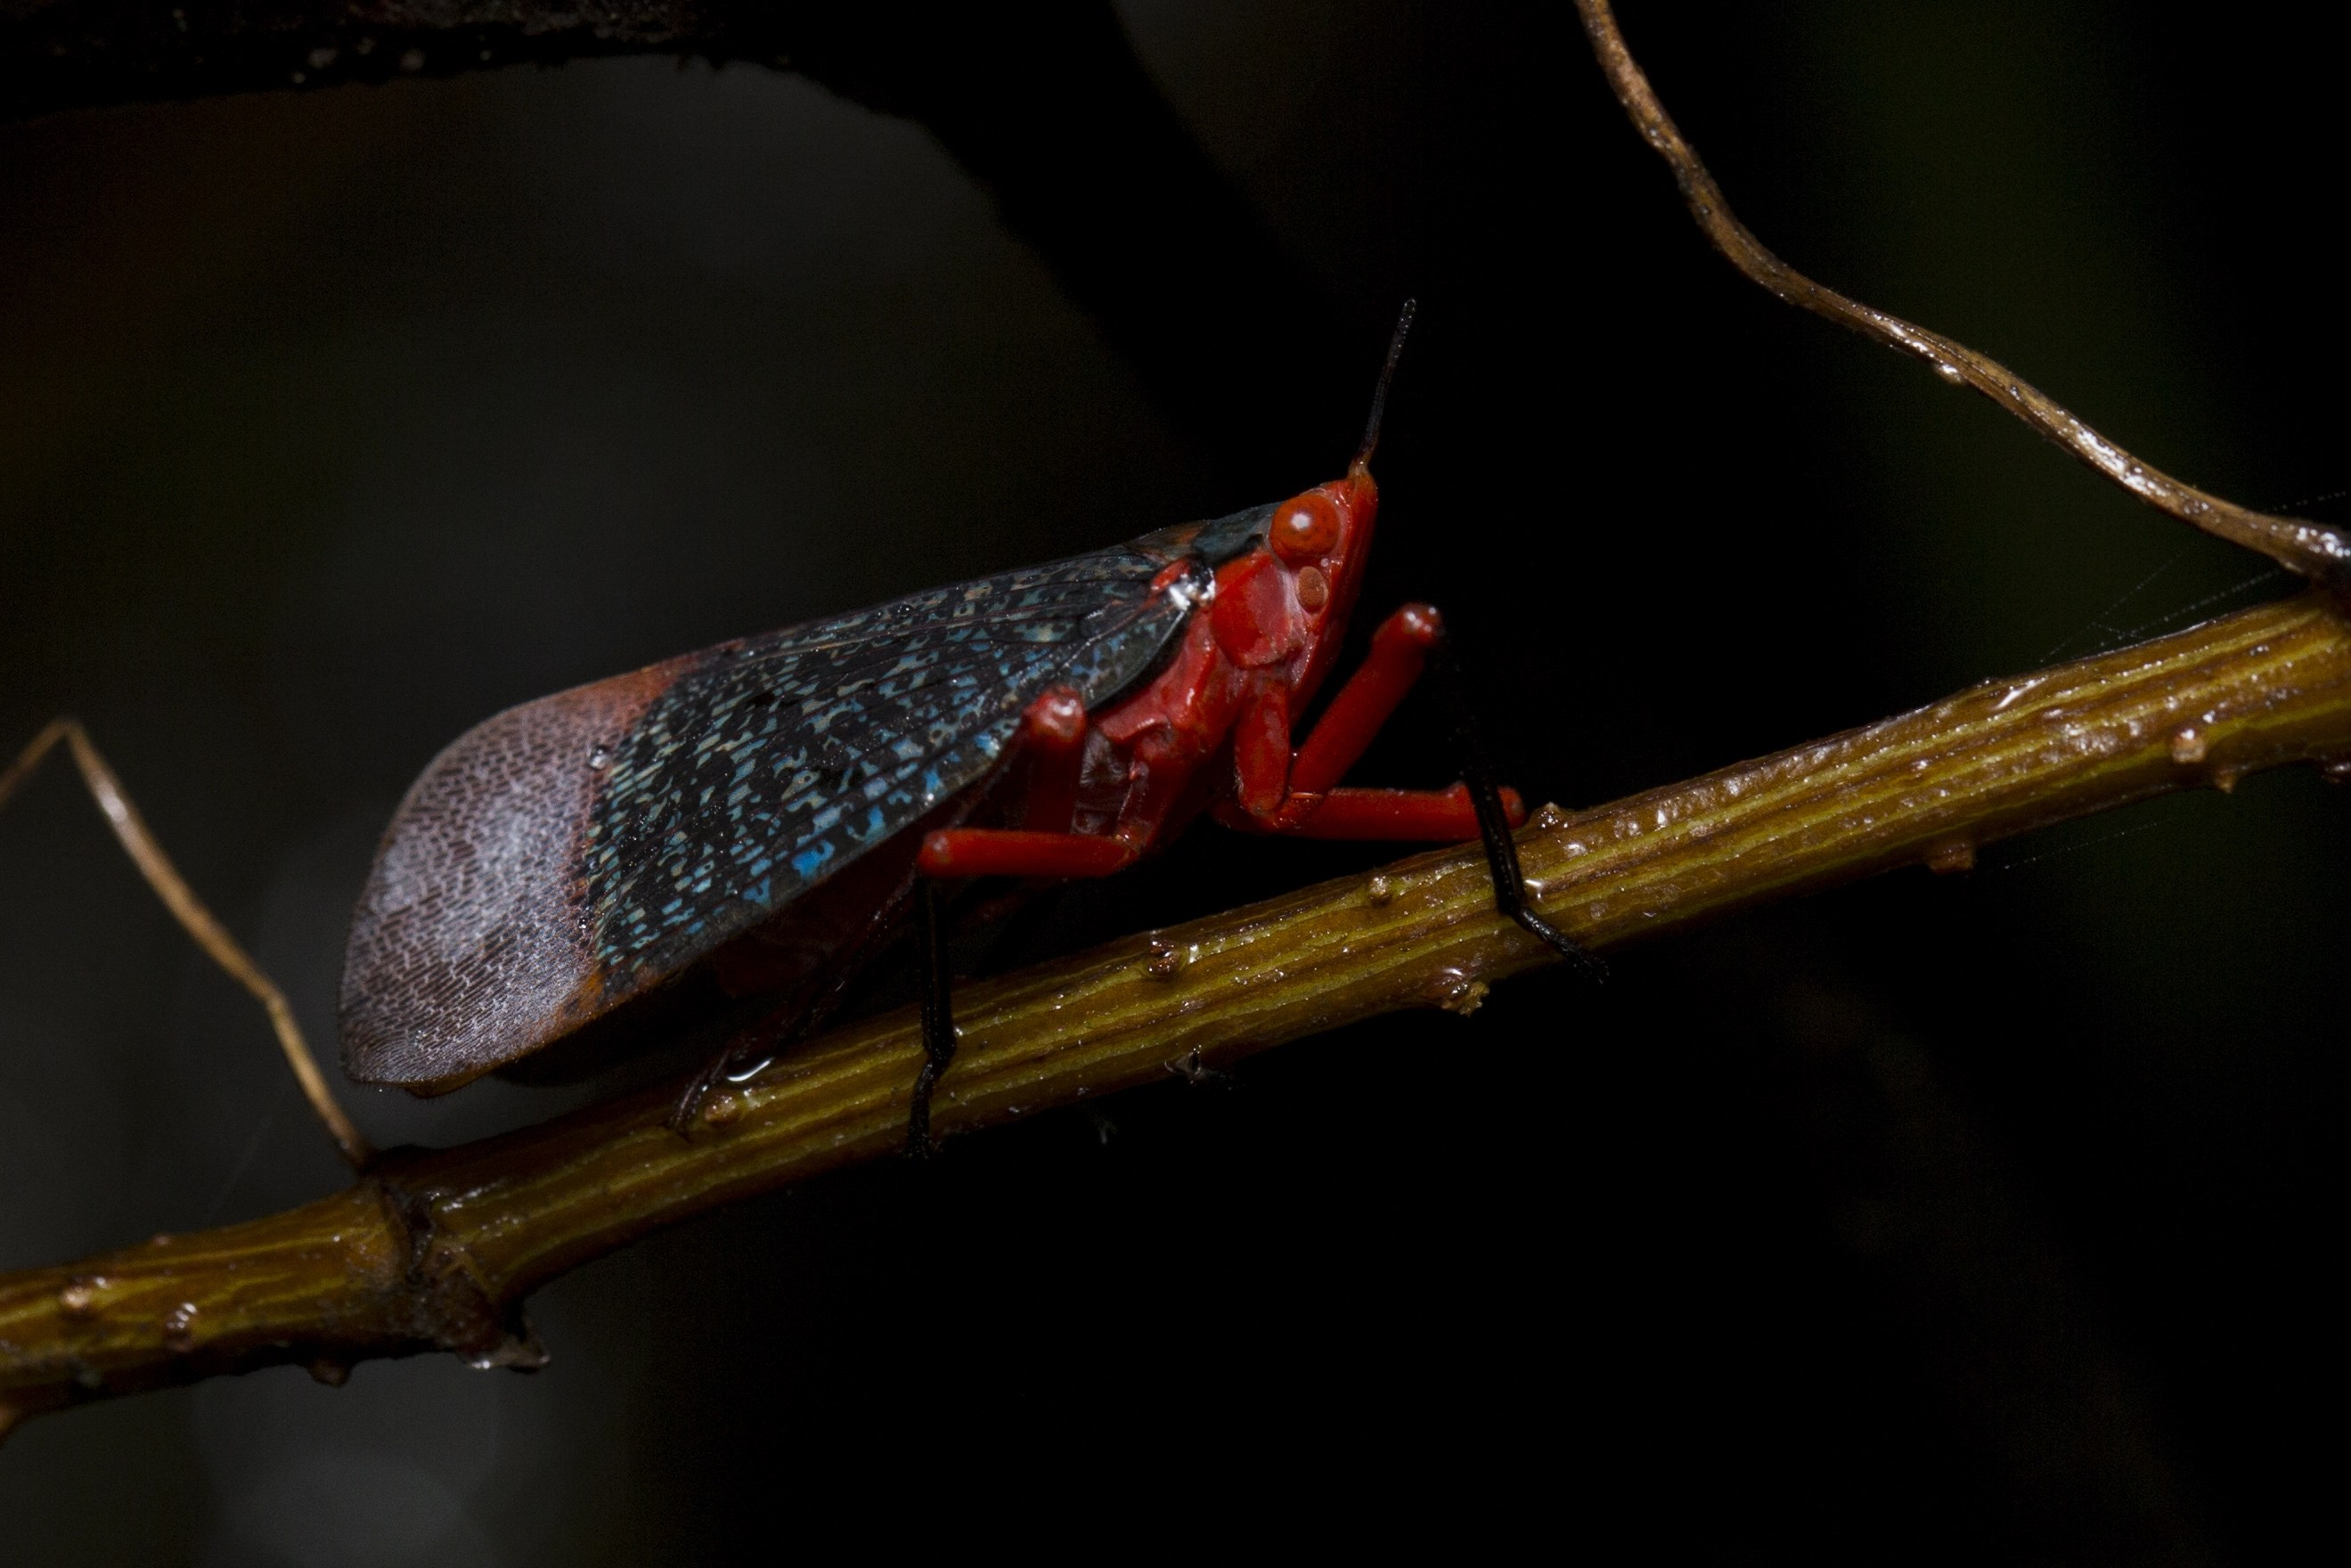 The red lanternfly (Kalidasa lantana) can be identified by a slender and flexible stalk-like outgrowth arising from above the tip of its snout. Photo: Saurabh Sawant